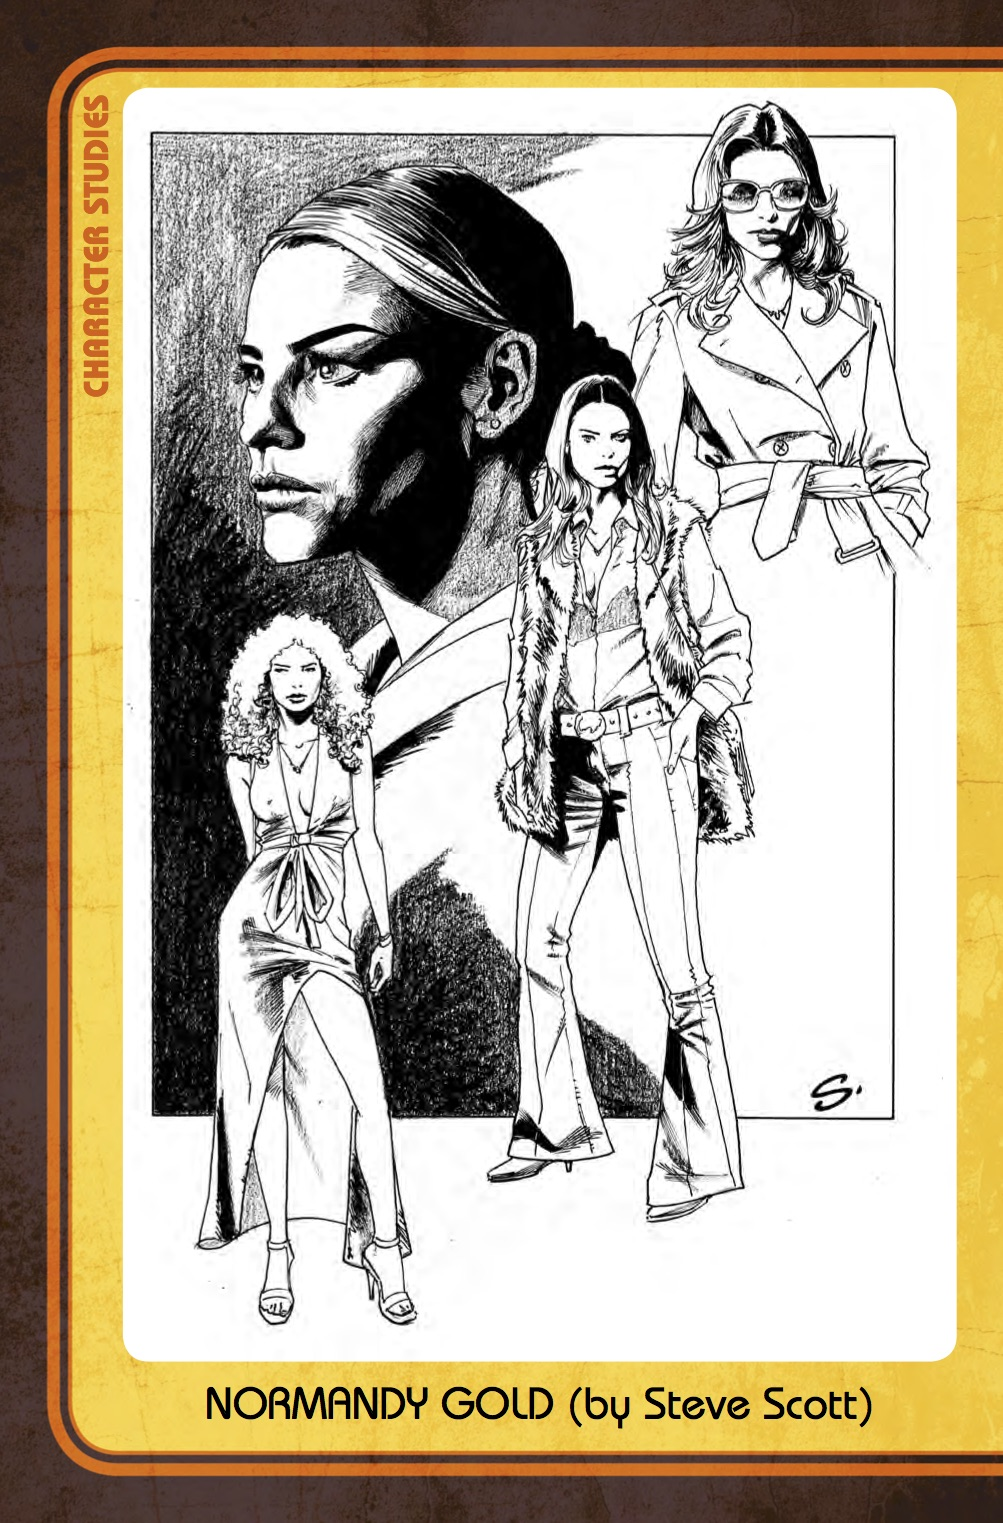 Normandy_Gold_collection_1charactersketch.jpg